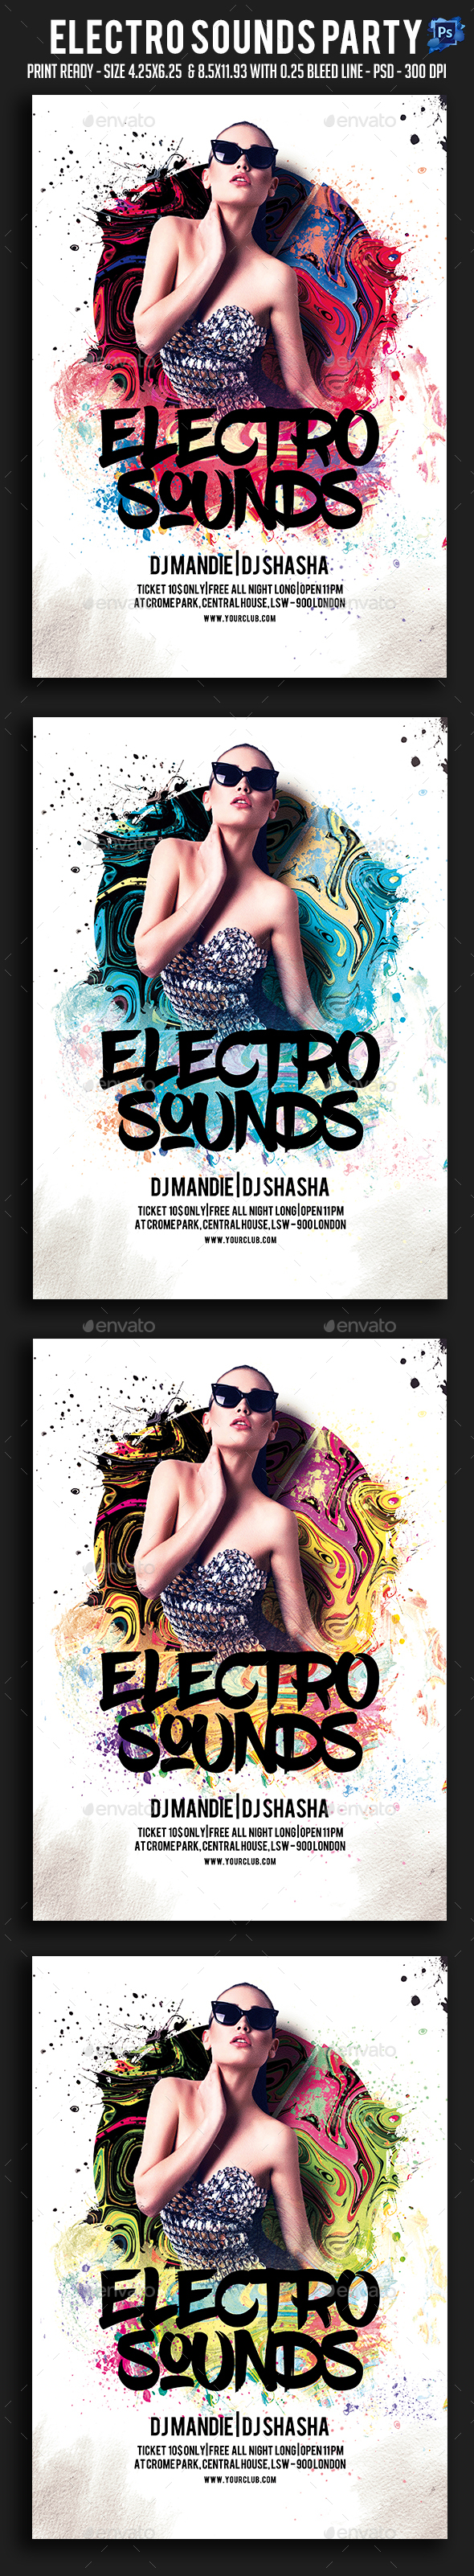 Electro Sounds Party Flyer - Clubs & Parties Events